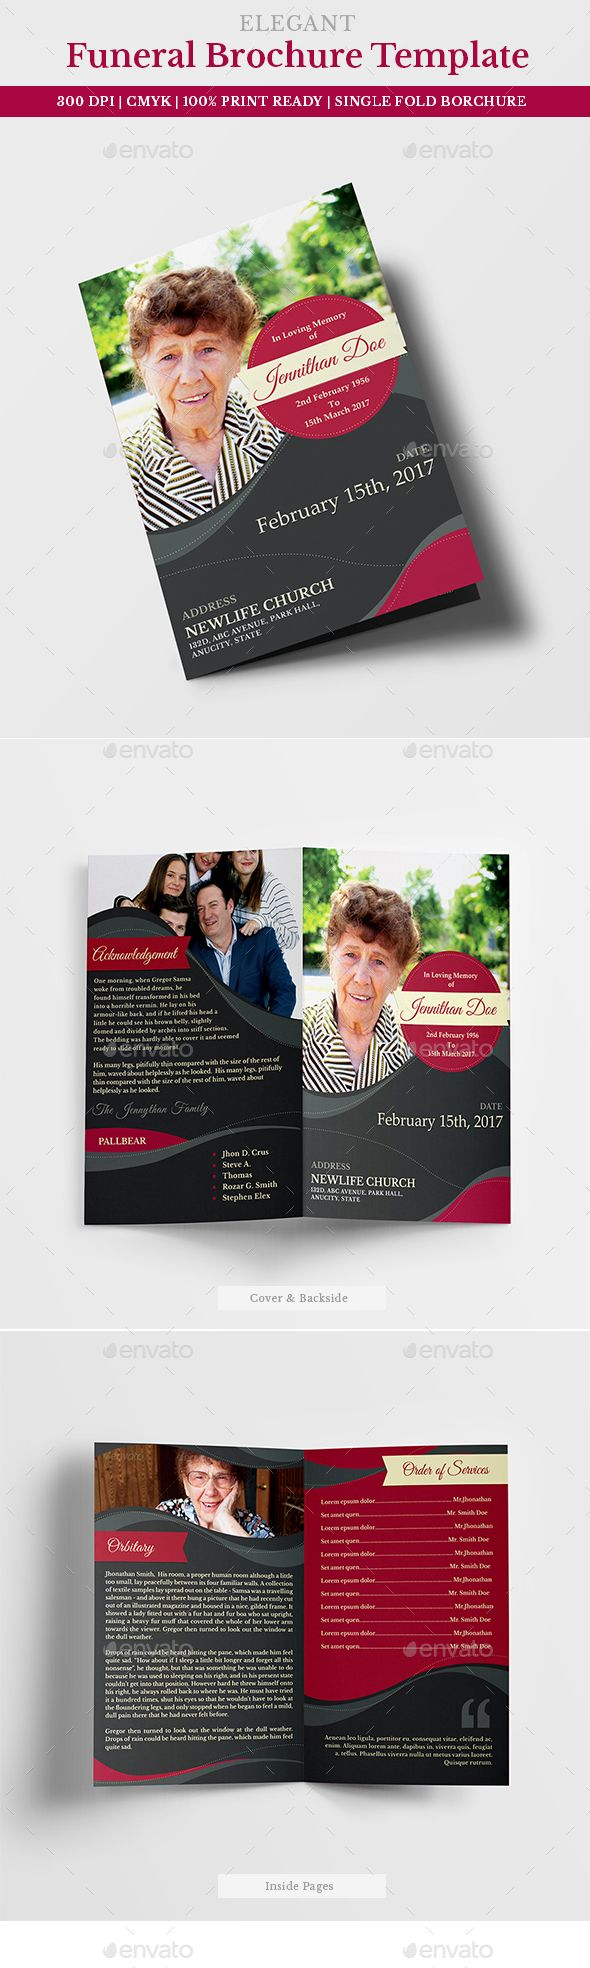 Funeral Program Brochure Template   Brochure Template